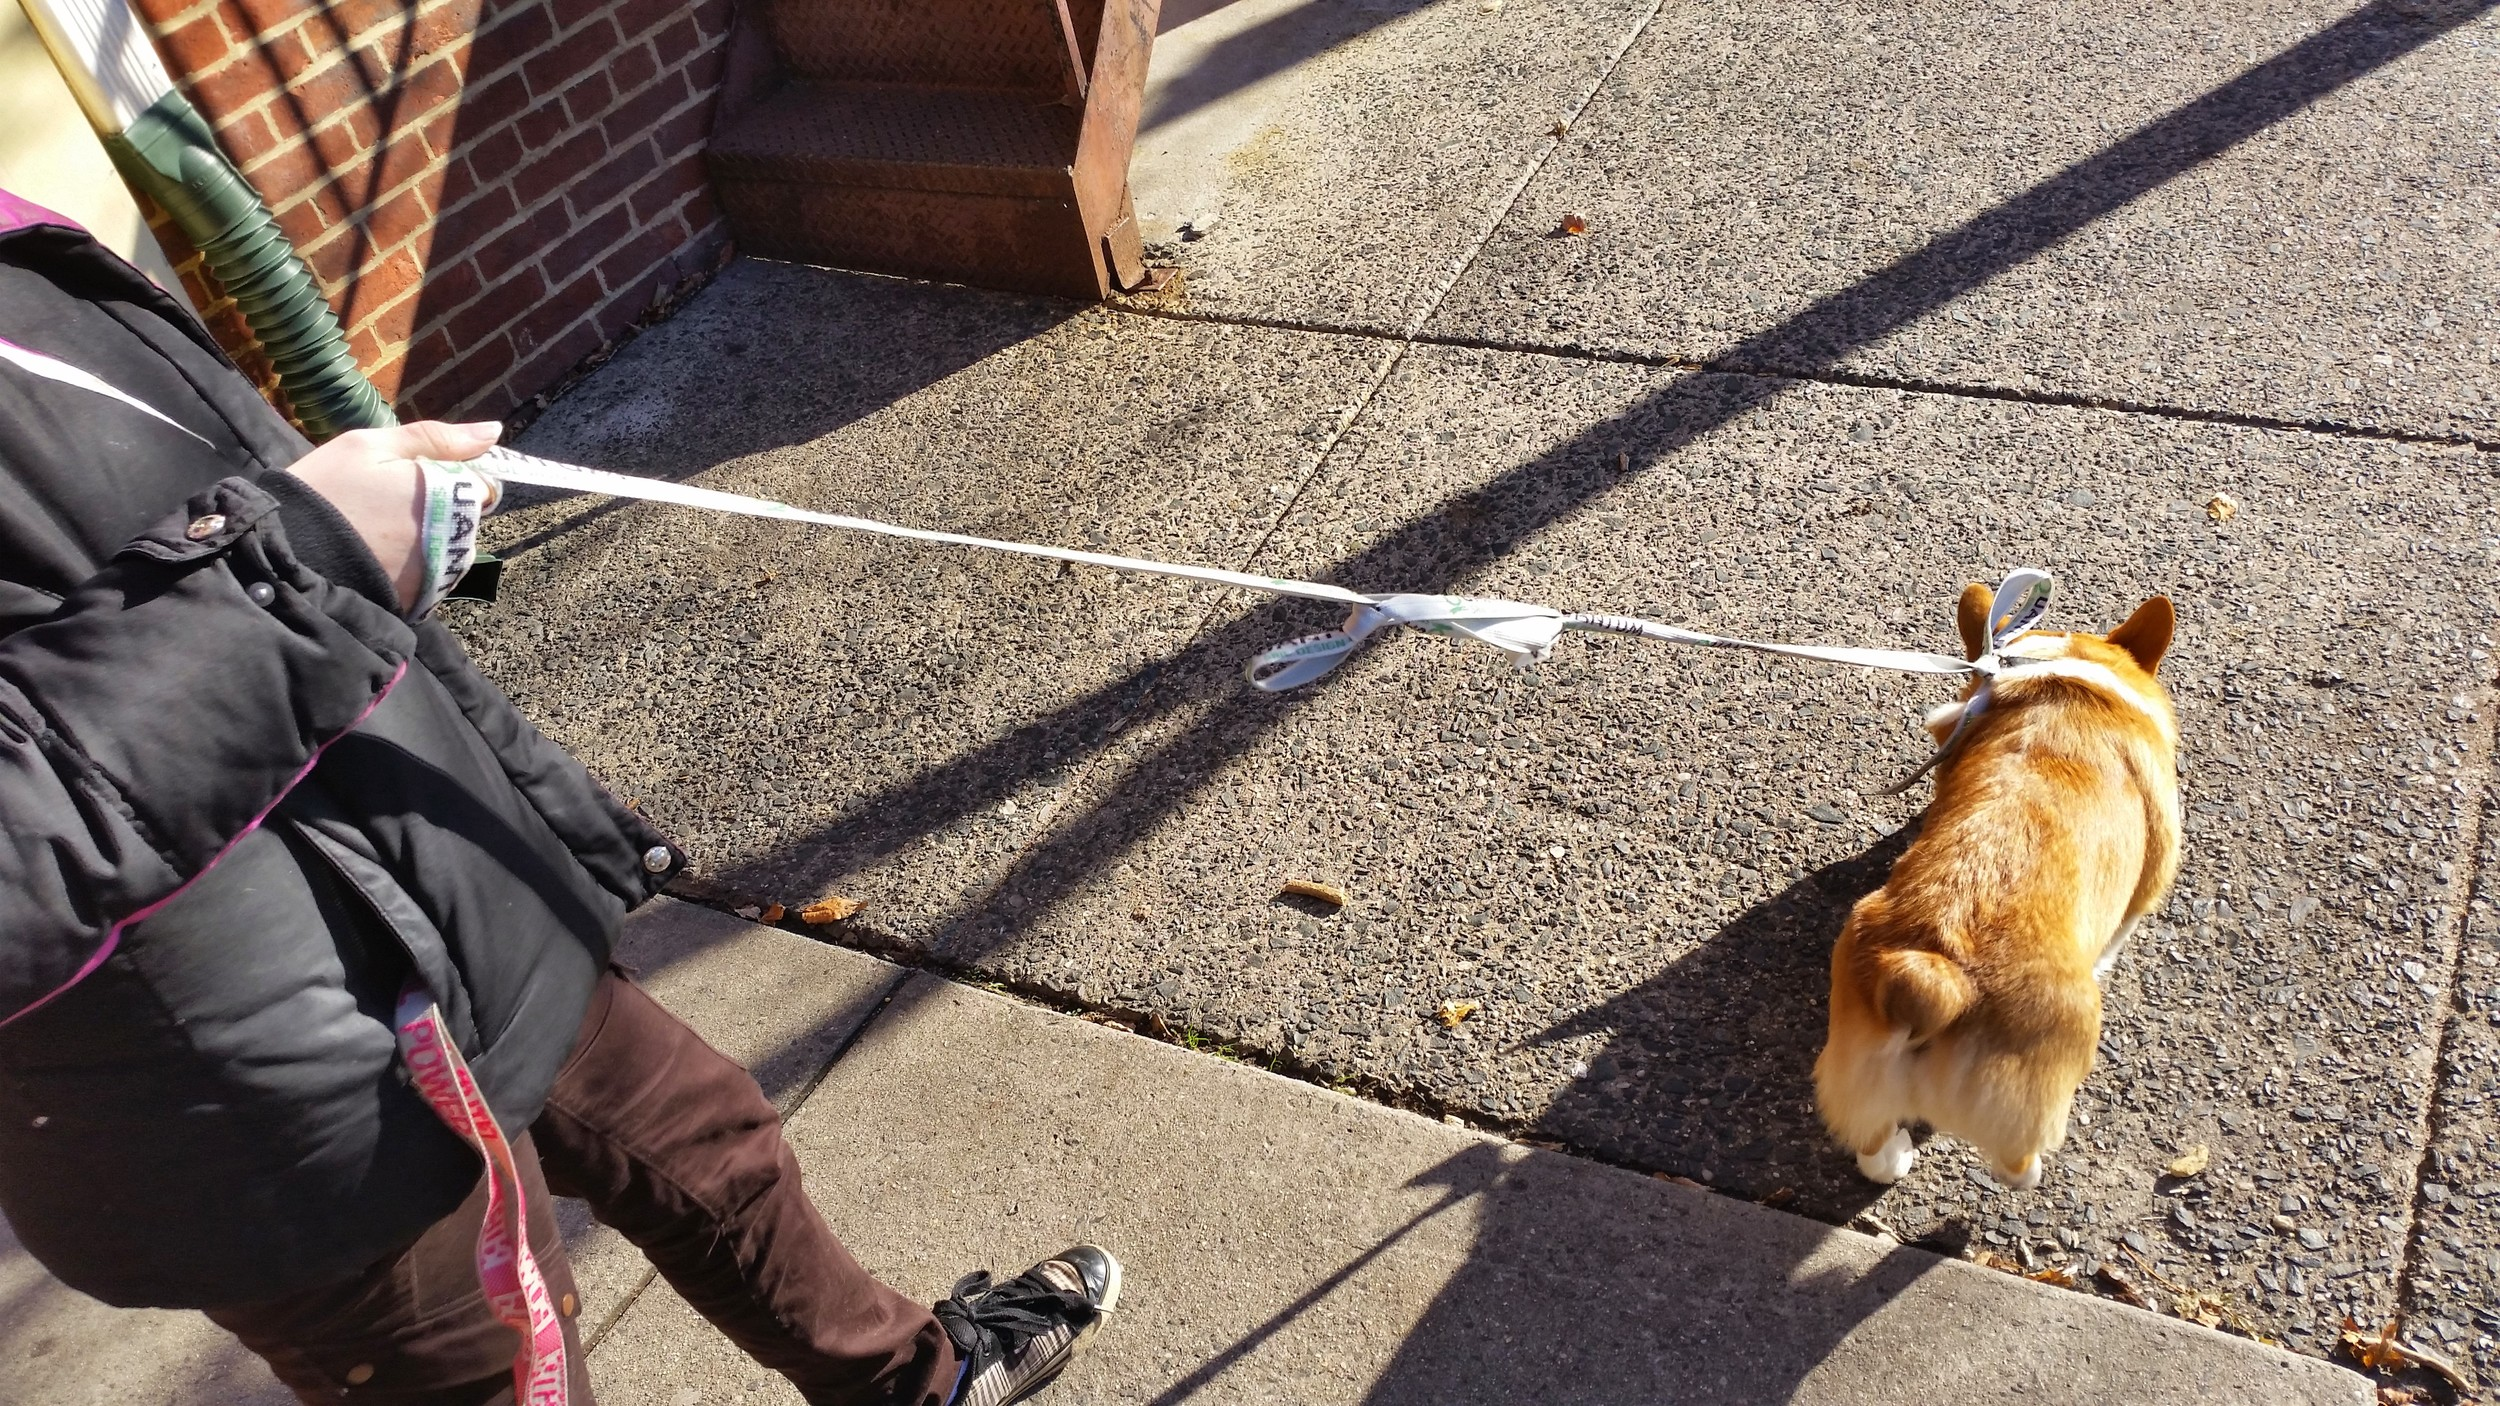 As a true boat dog, his leash is a sail tie.